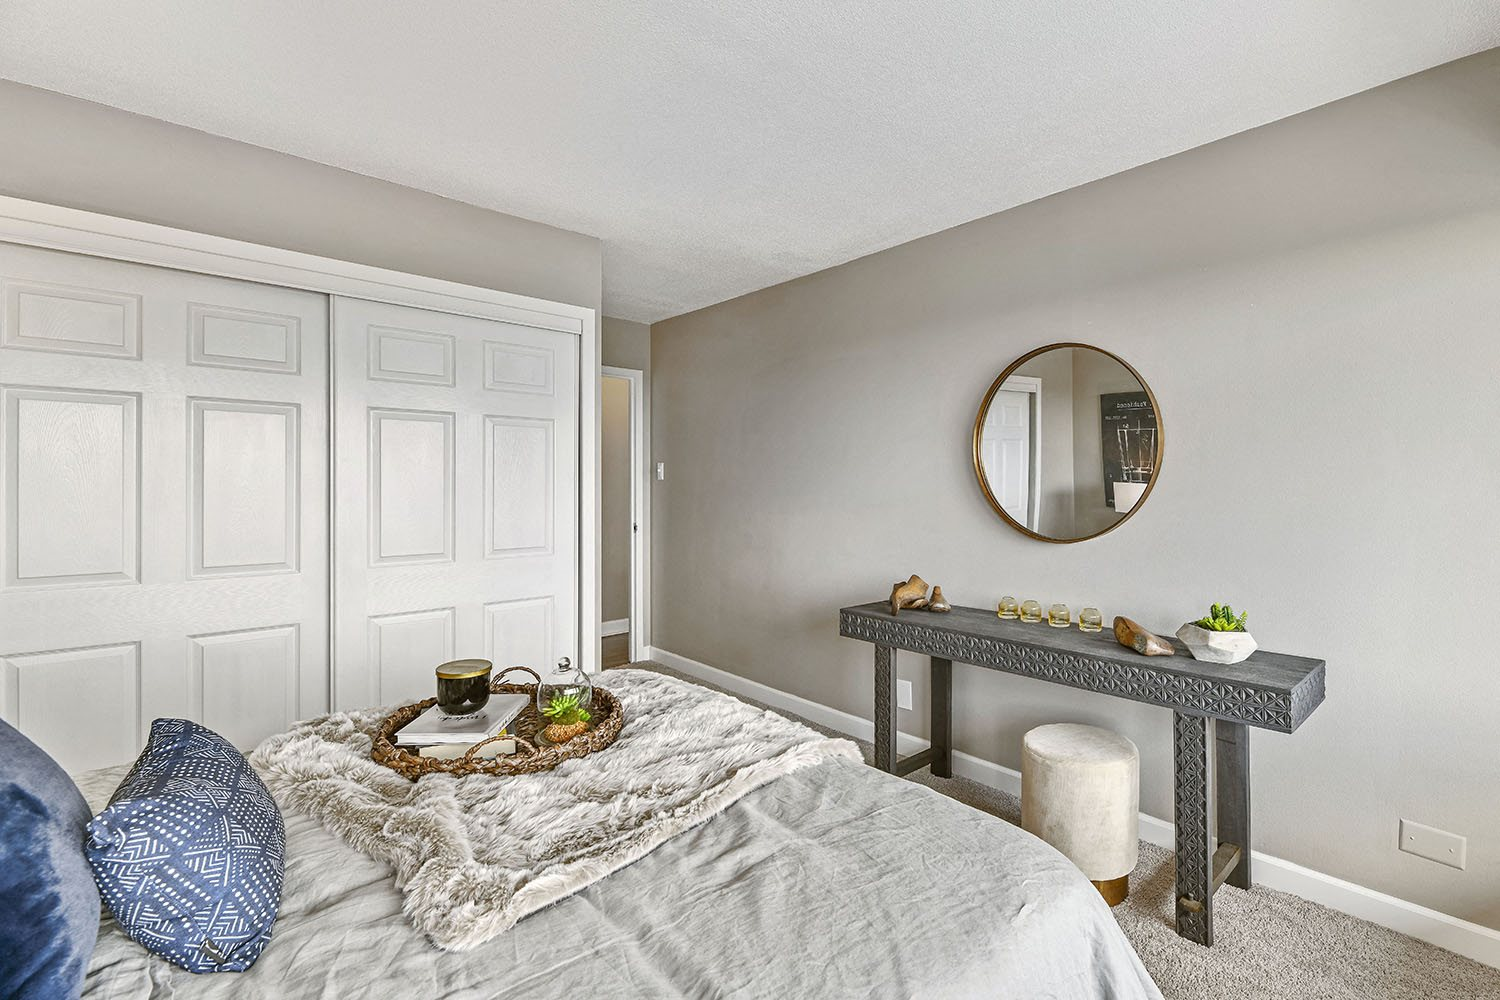 Bedroom with Large Closet at CityView on Meridian, Indiana,46208